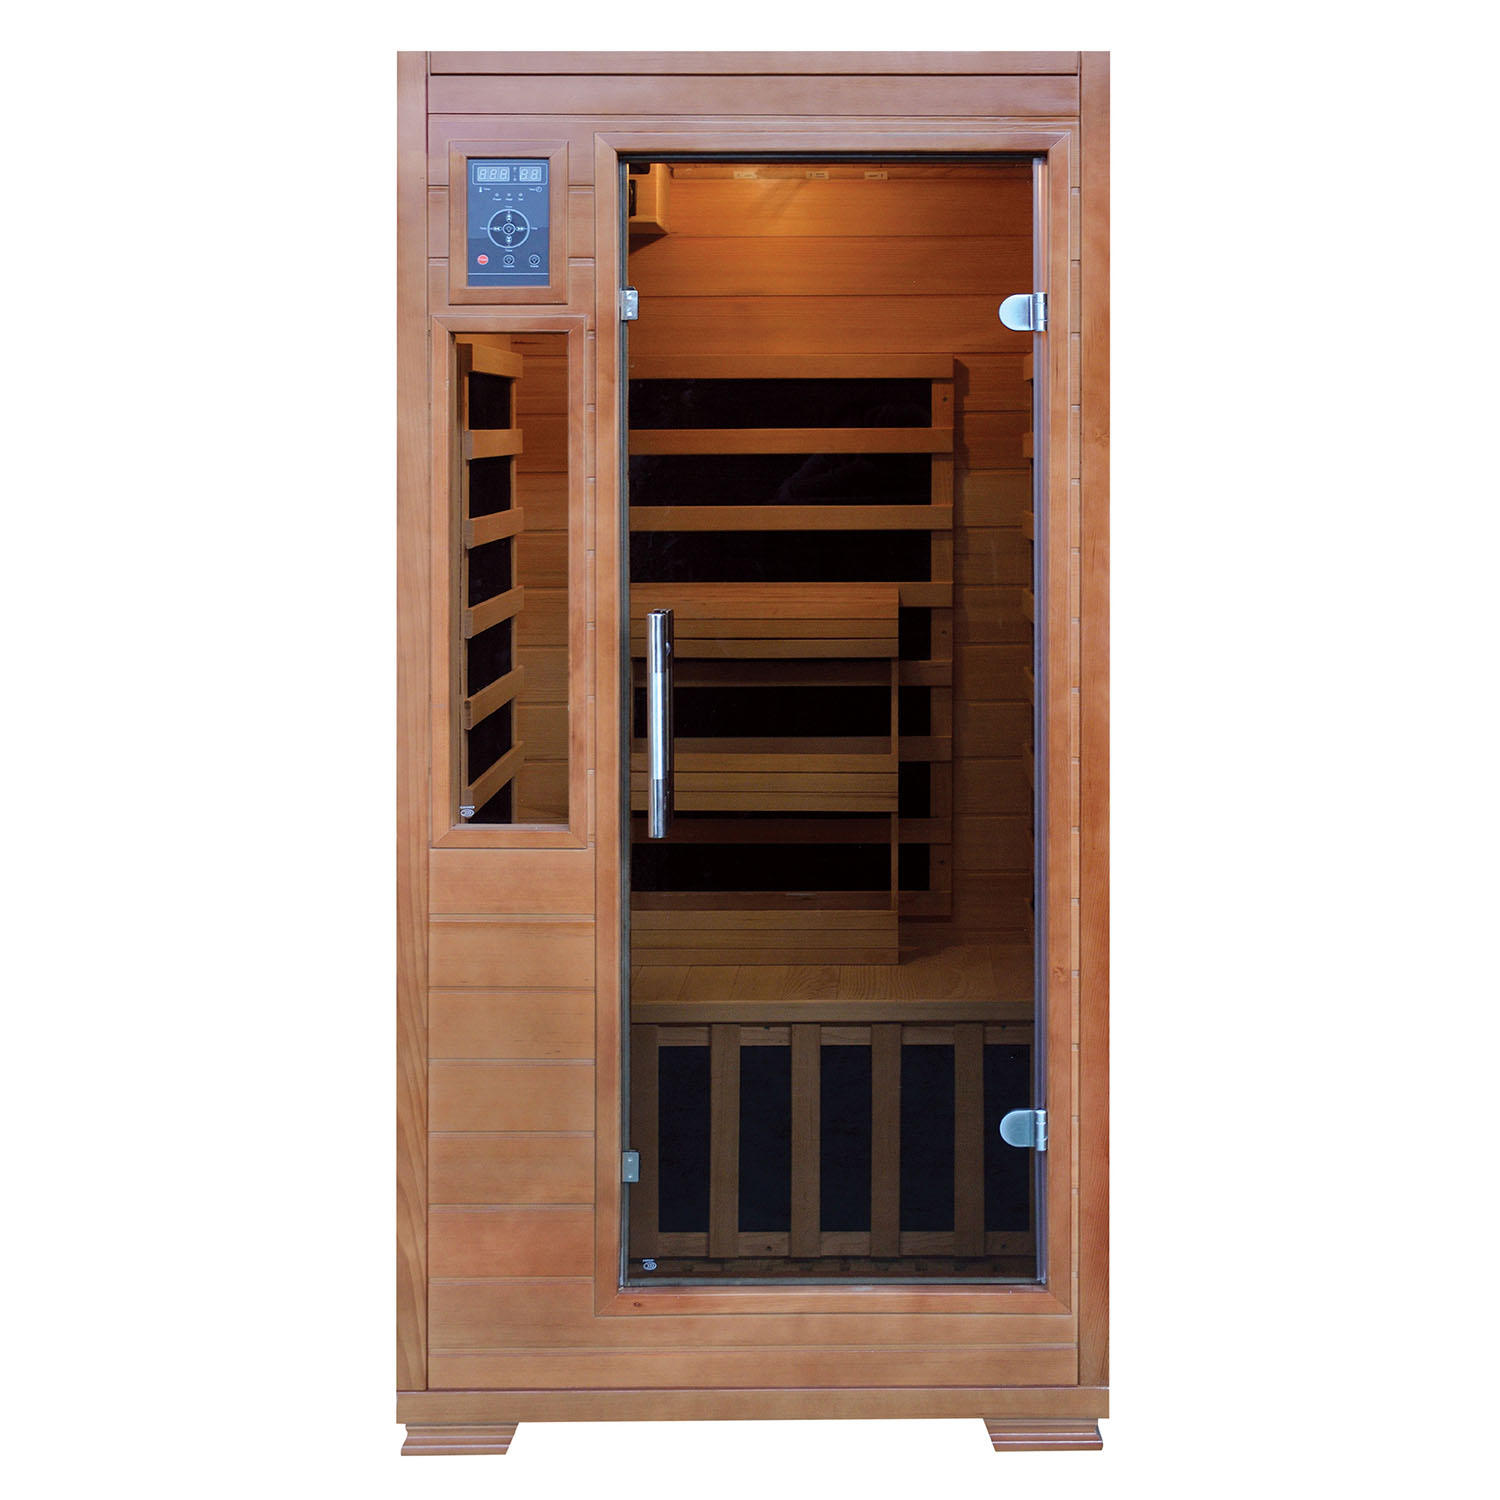 Hemlock SA3202 Infrared Sauna with 5 Carbon Heaters,1-2 Person Capacity